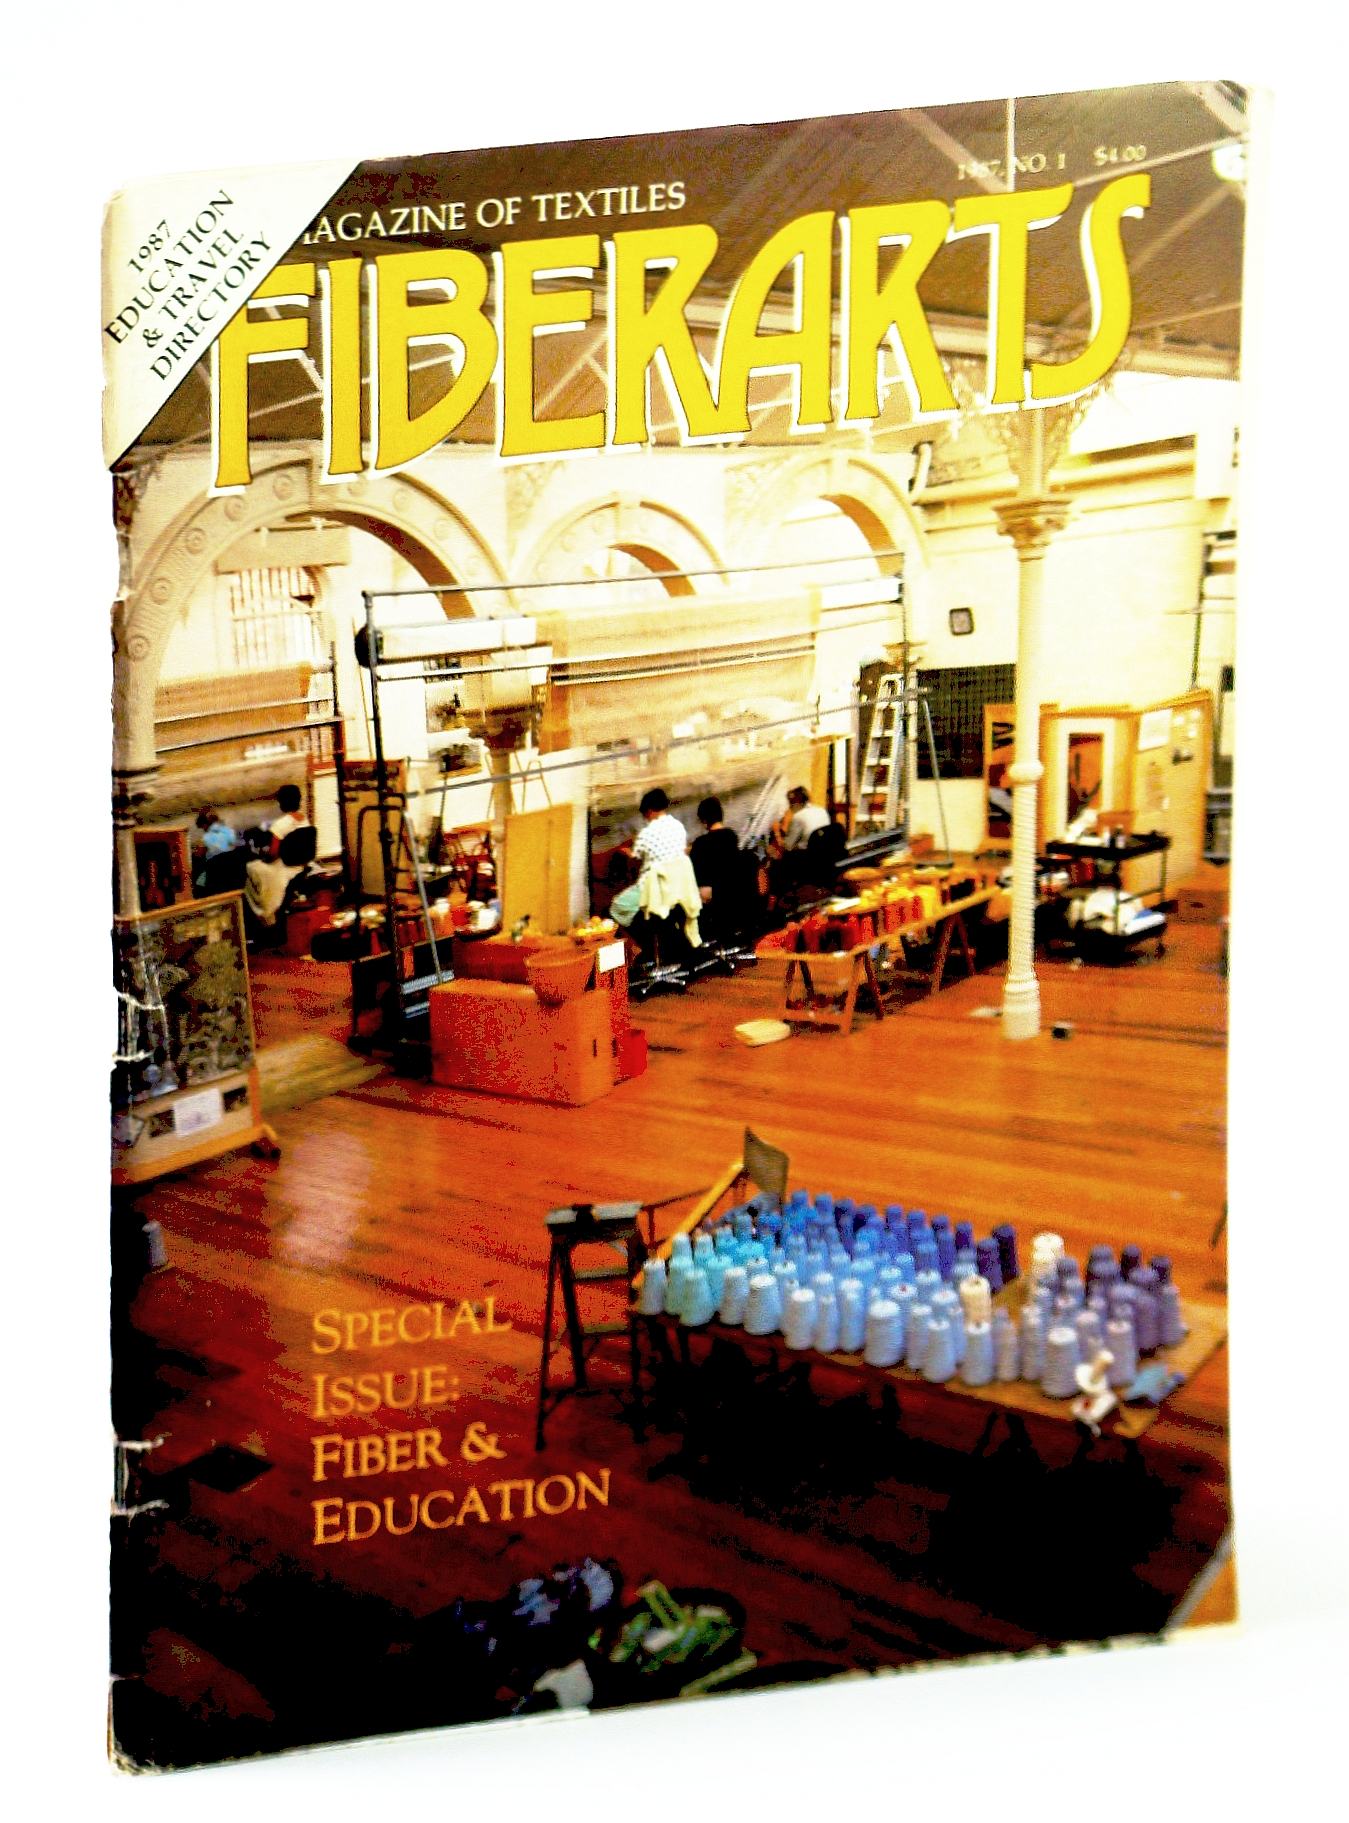 Image for Fiberarts, The Magazine of Textiles, January / February (Jan. / Feb.) 1987: Fiber and Education